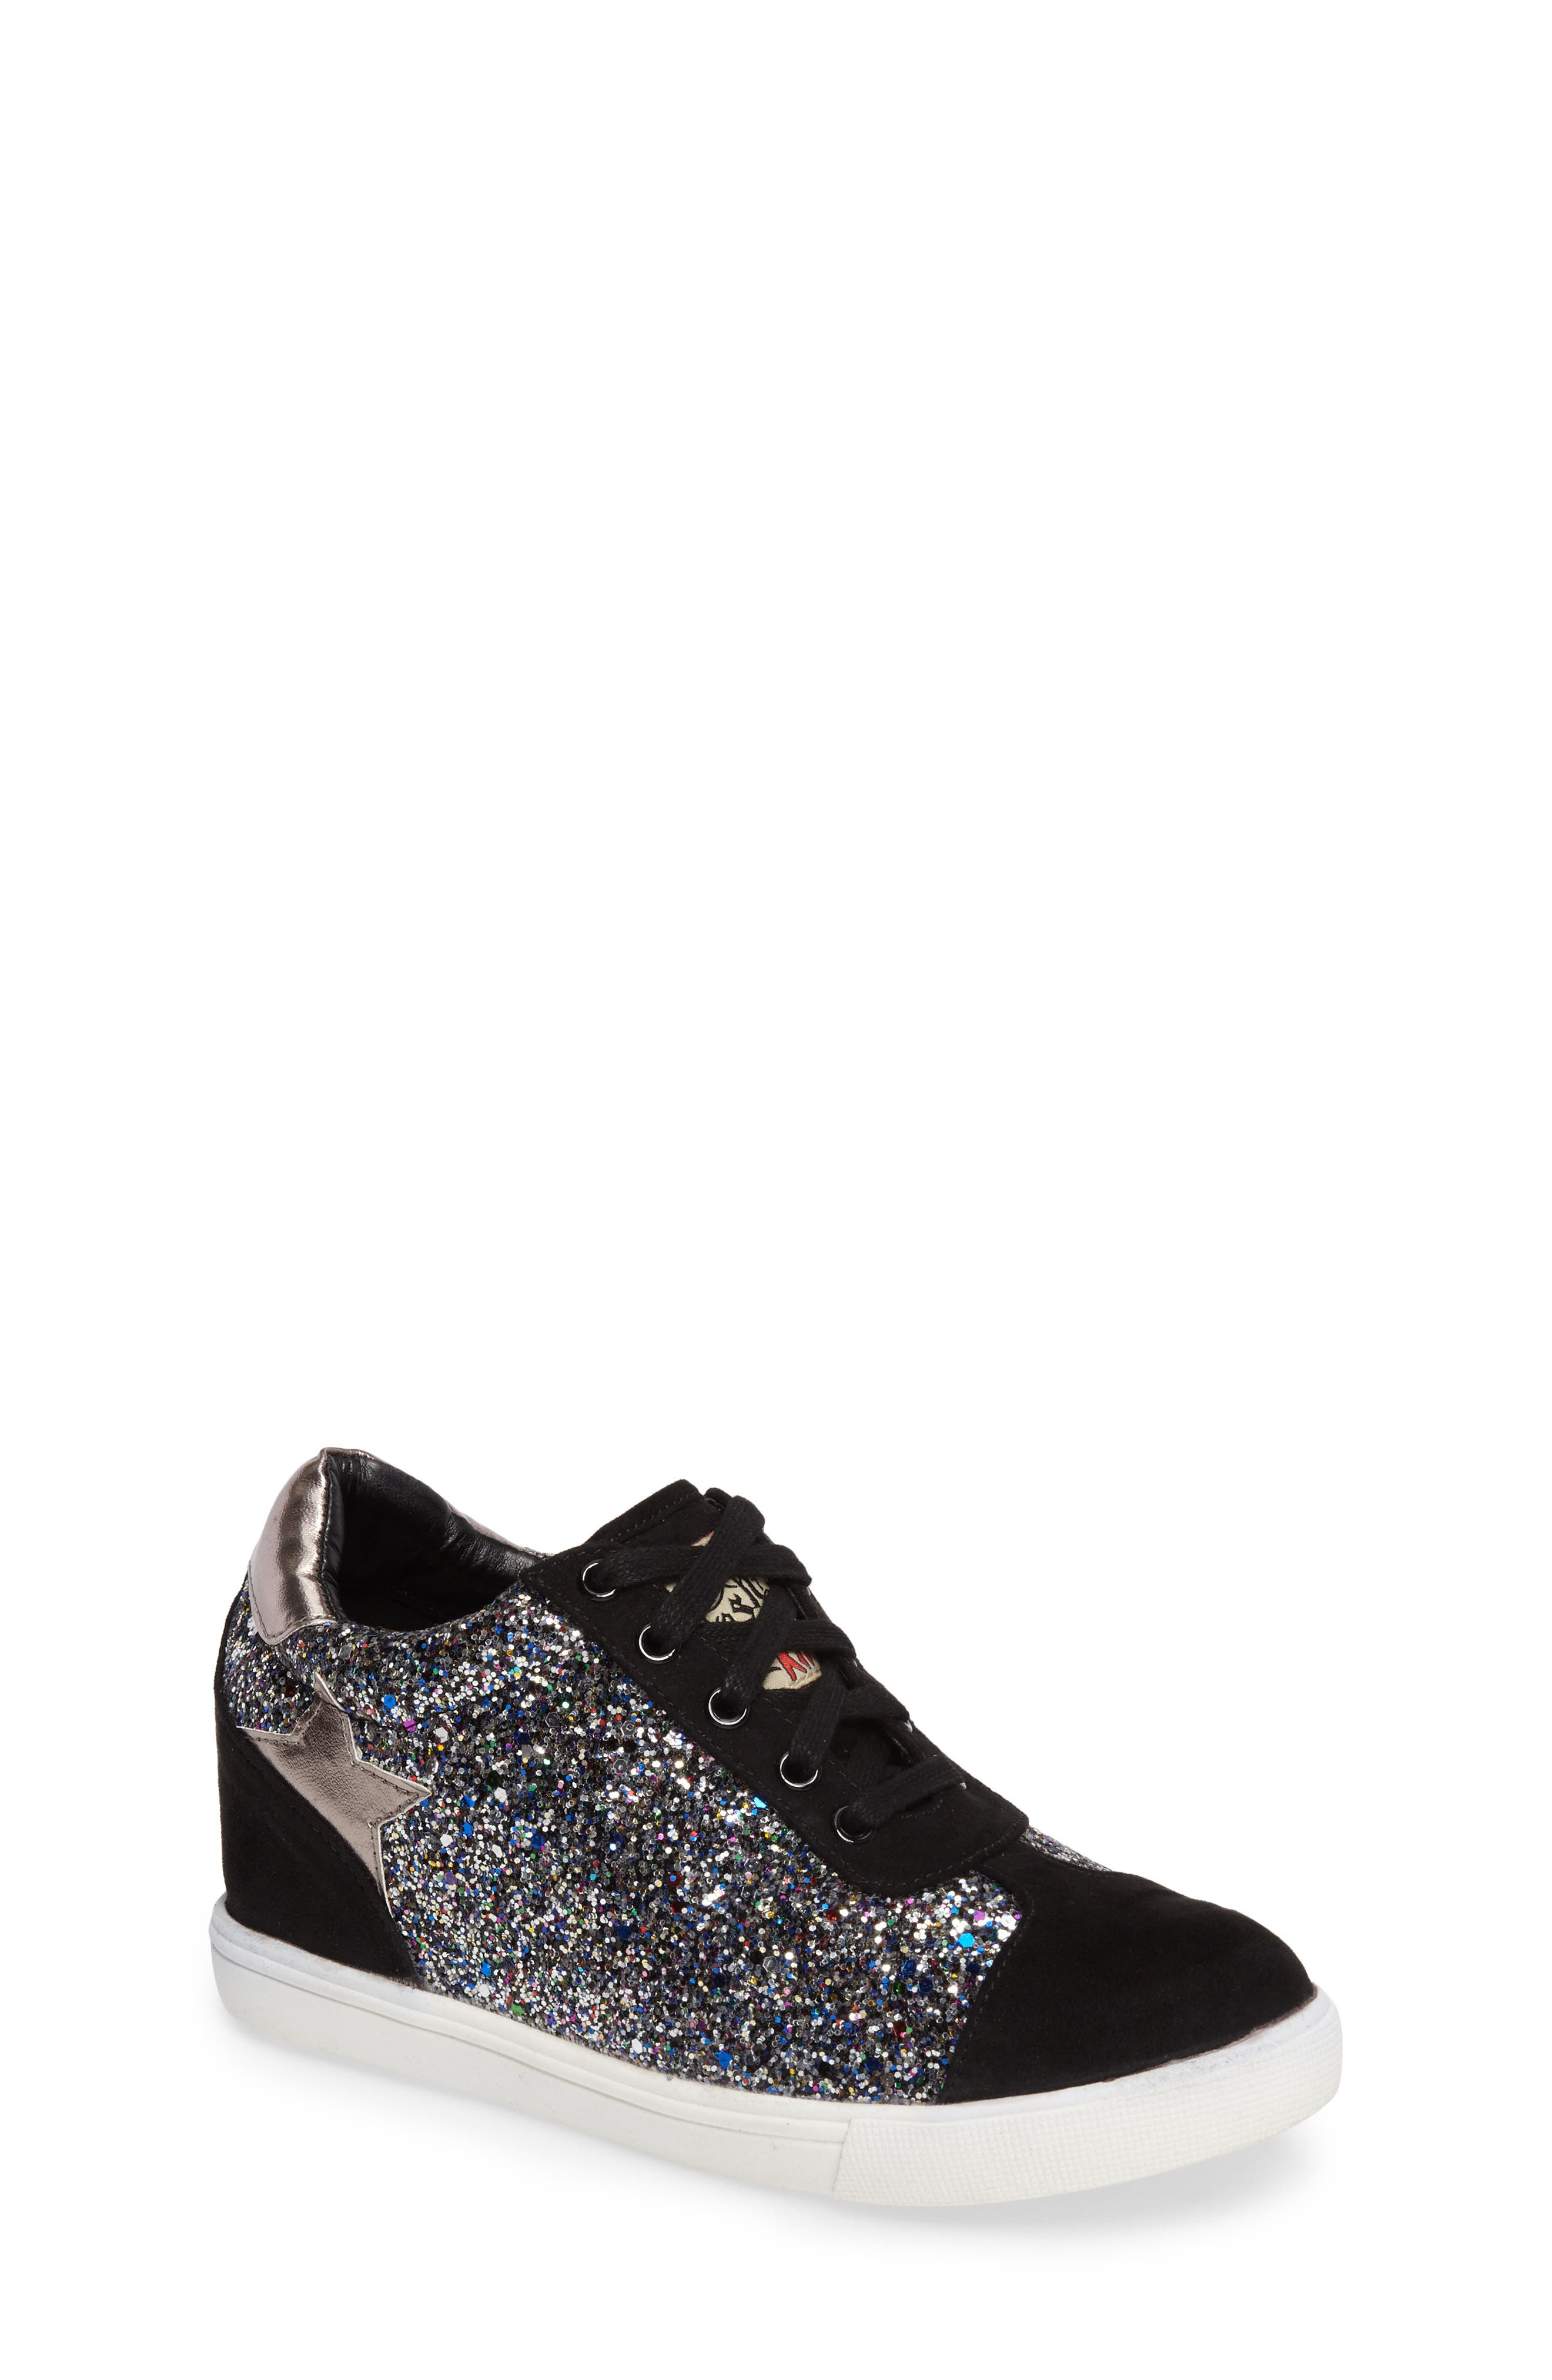 Main Image - Ash Low Star Glittery Concealed Wedge Sneaker (Toddler, Little Kid & Big Kid)